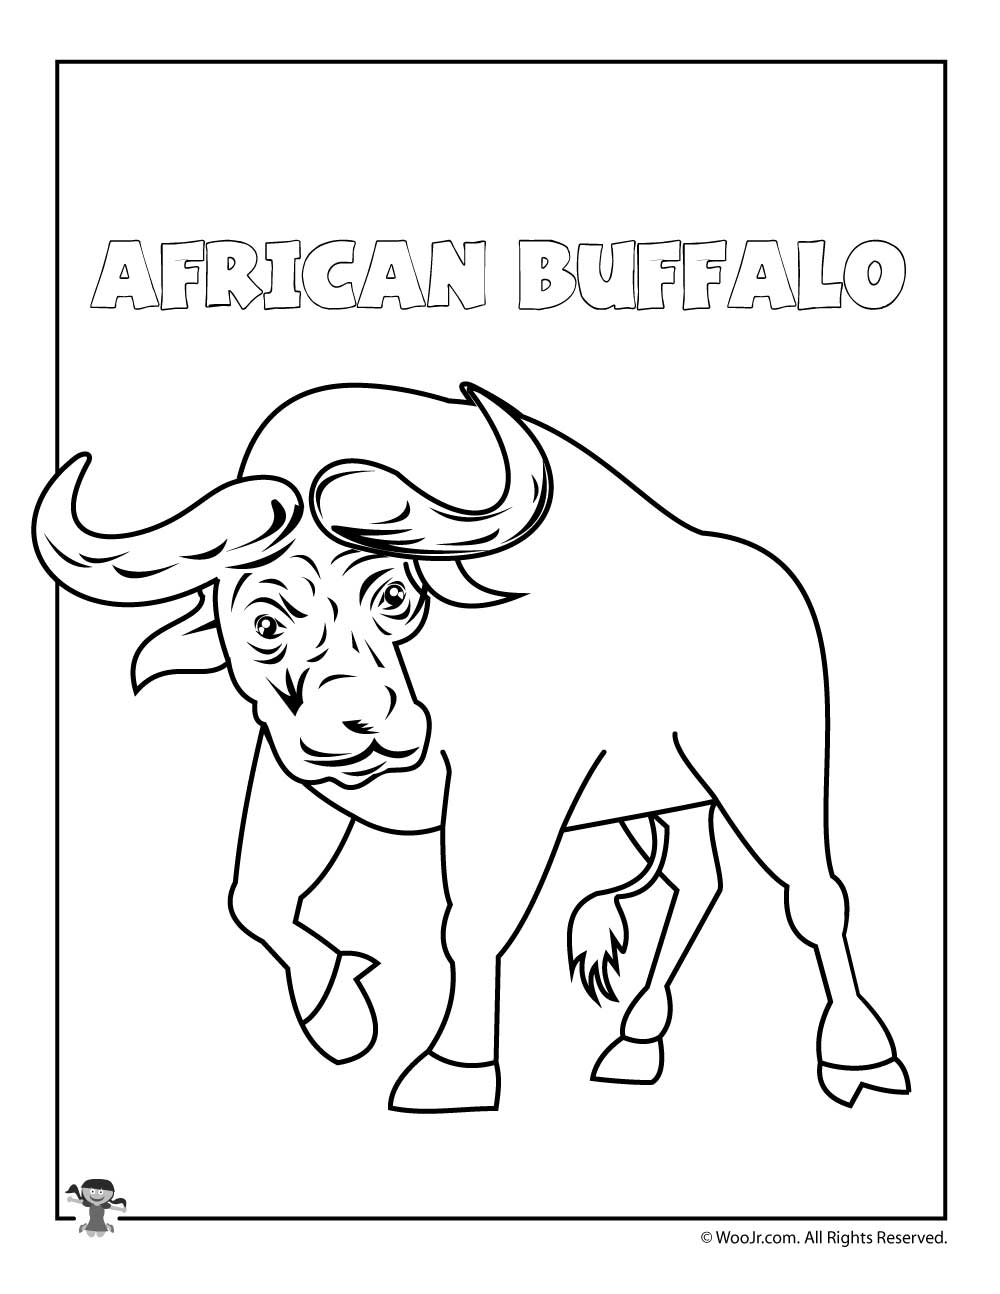 buffalo coloring pages - photo#29